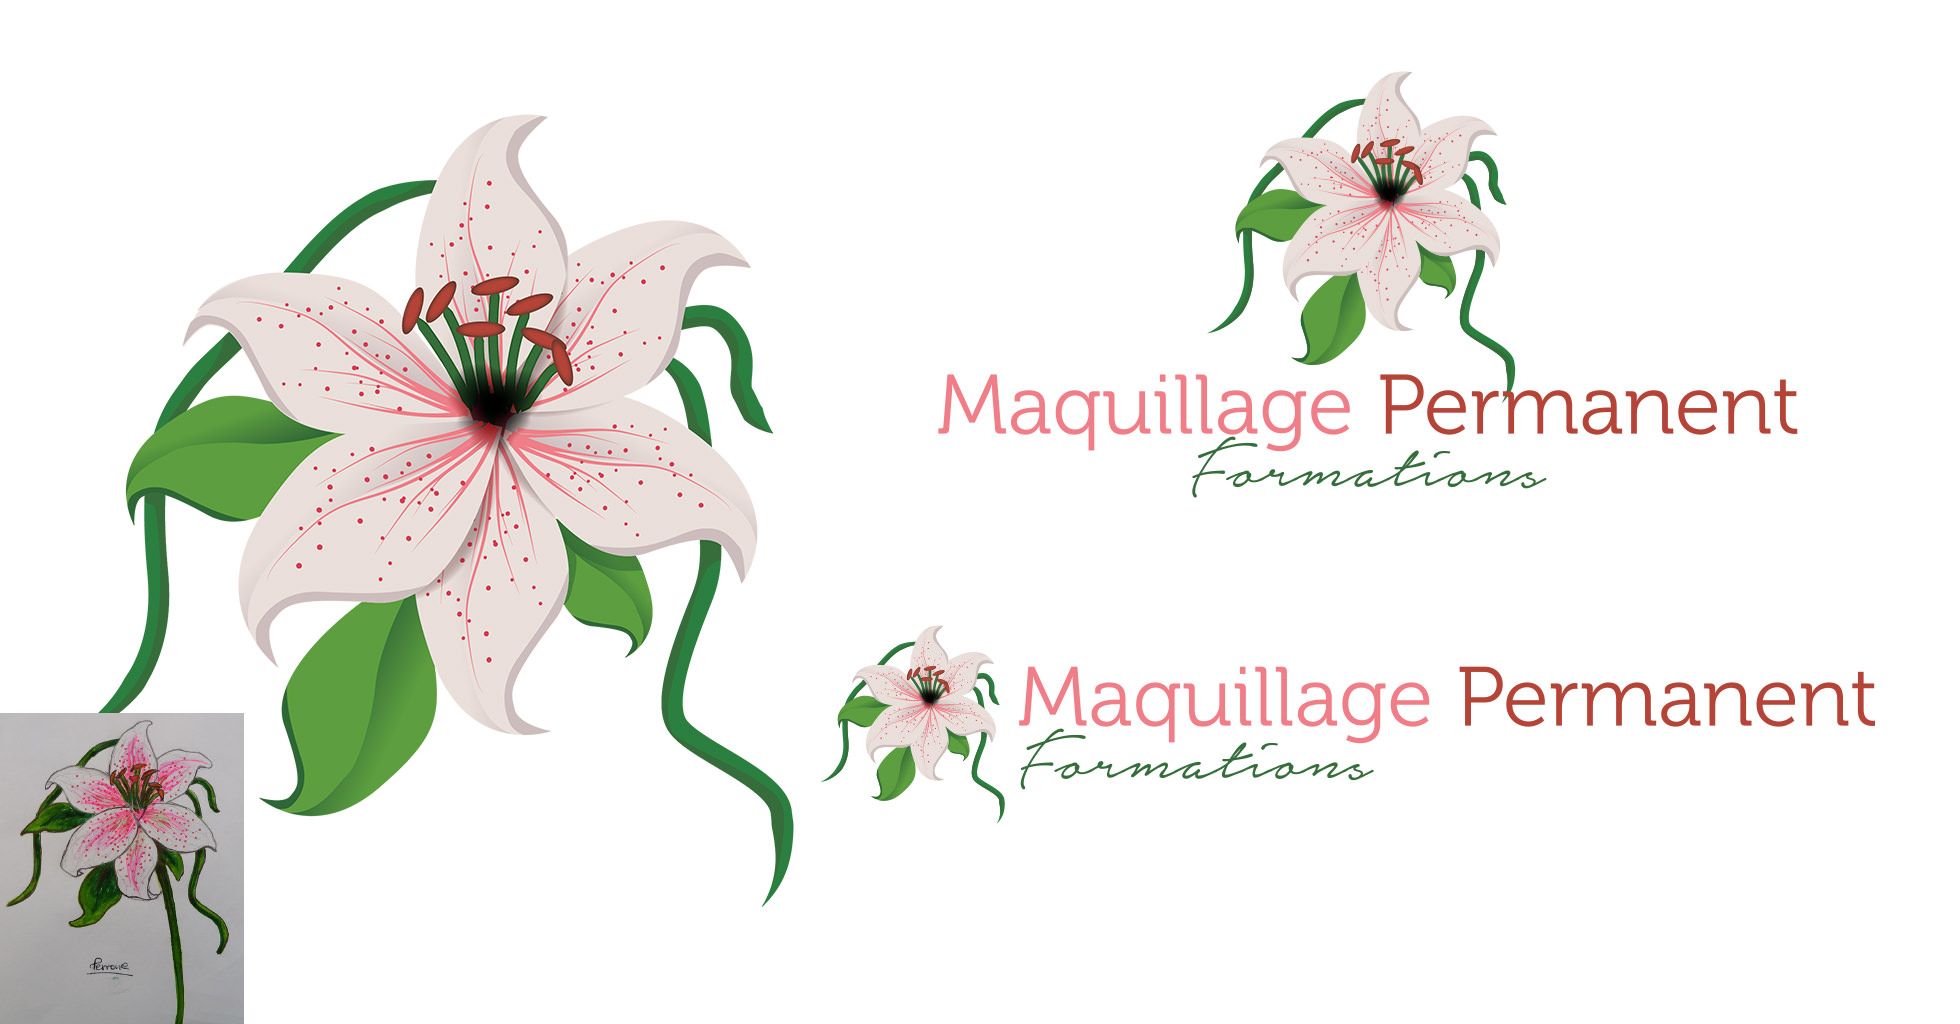 Maquillage Permanent Formations - Création du logo